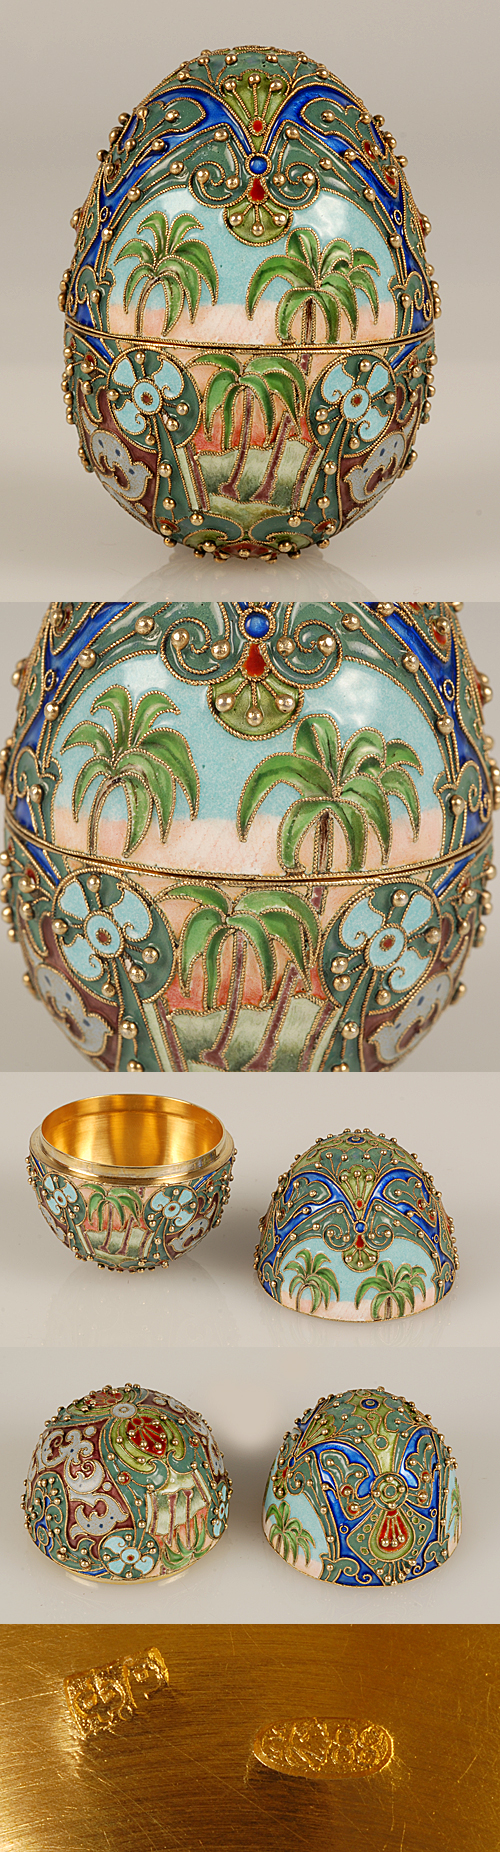 An exceptional Russian gilded silver and shaded ccloisonne enamel Easter egg, made by Feodor Ruckert, Moscow, circa 1896-1908. Both haves are very uniquely decorated with shaded cloisonne and translucent enamel palm trees and stylized foliage outlined in gilded silver stippling.